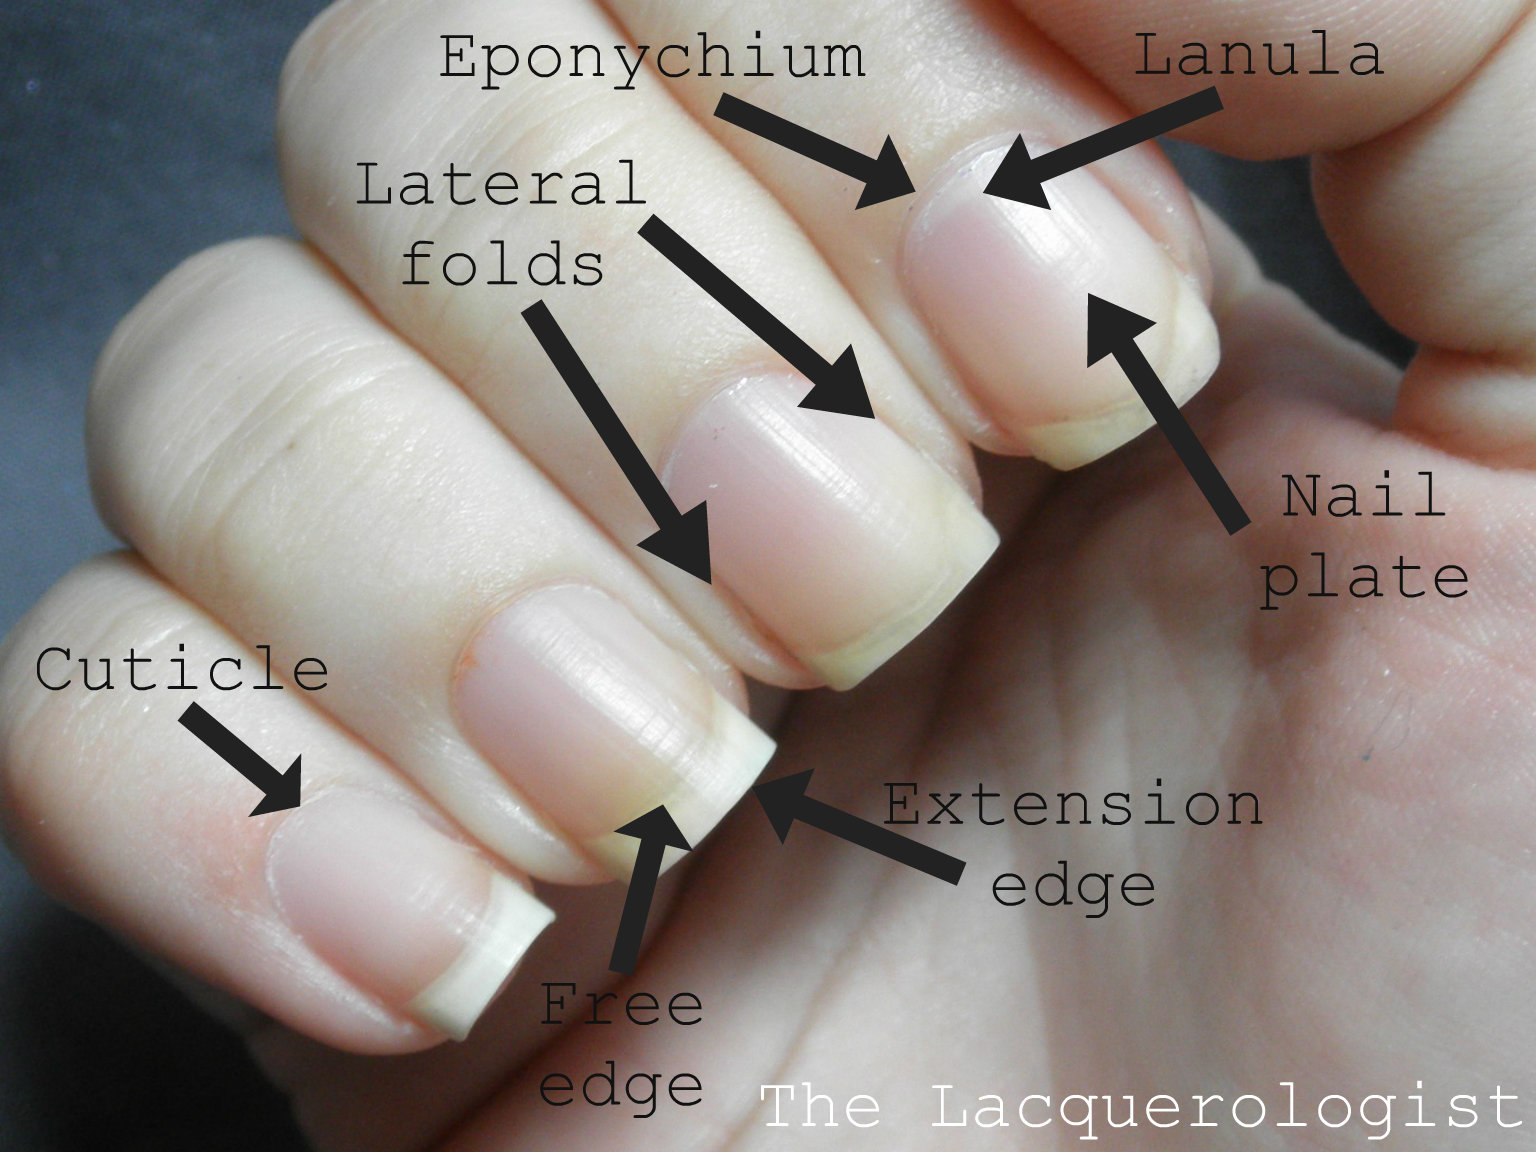 The Lacquerologist Tells All: Eponychium and Nail Plate Health and ...